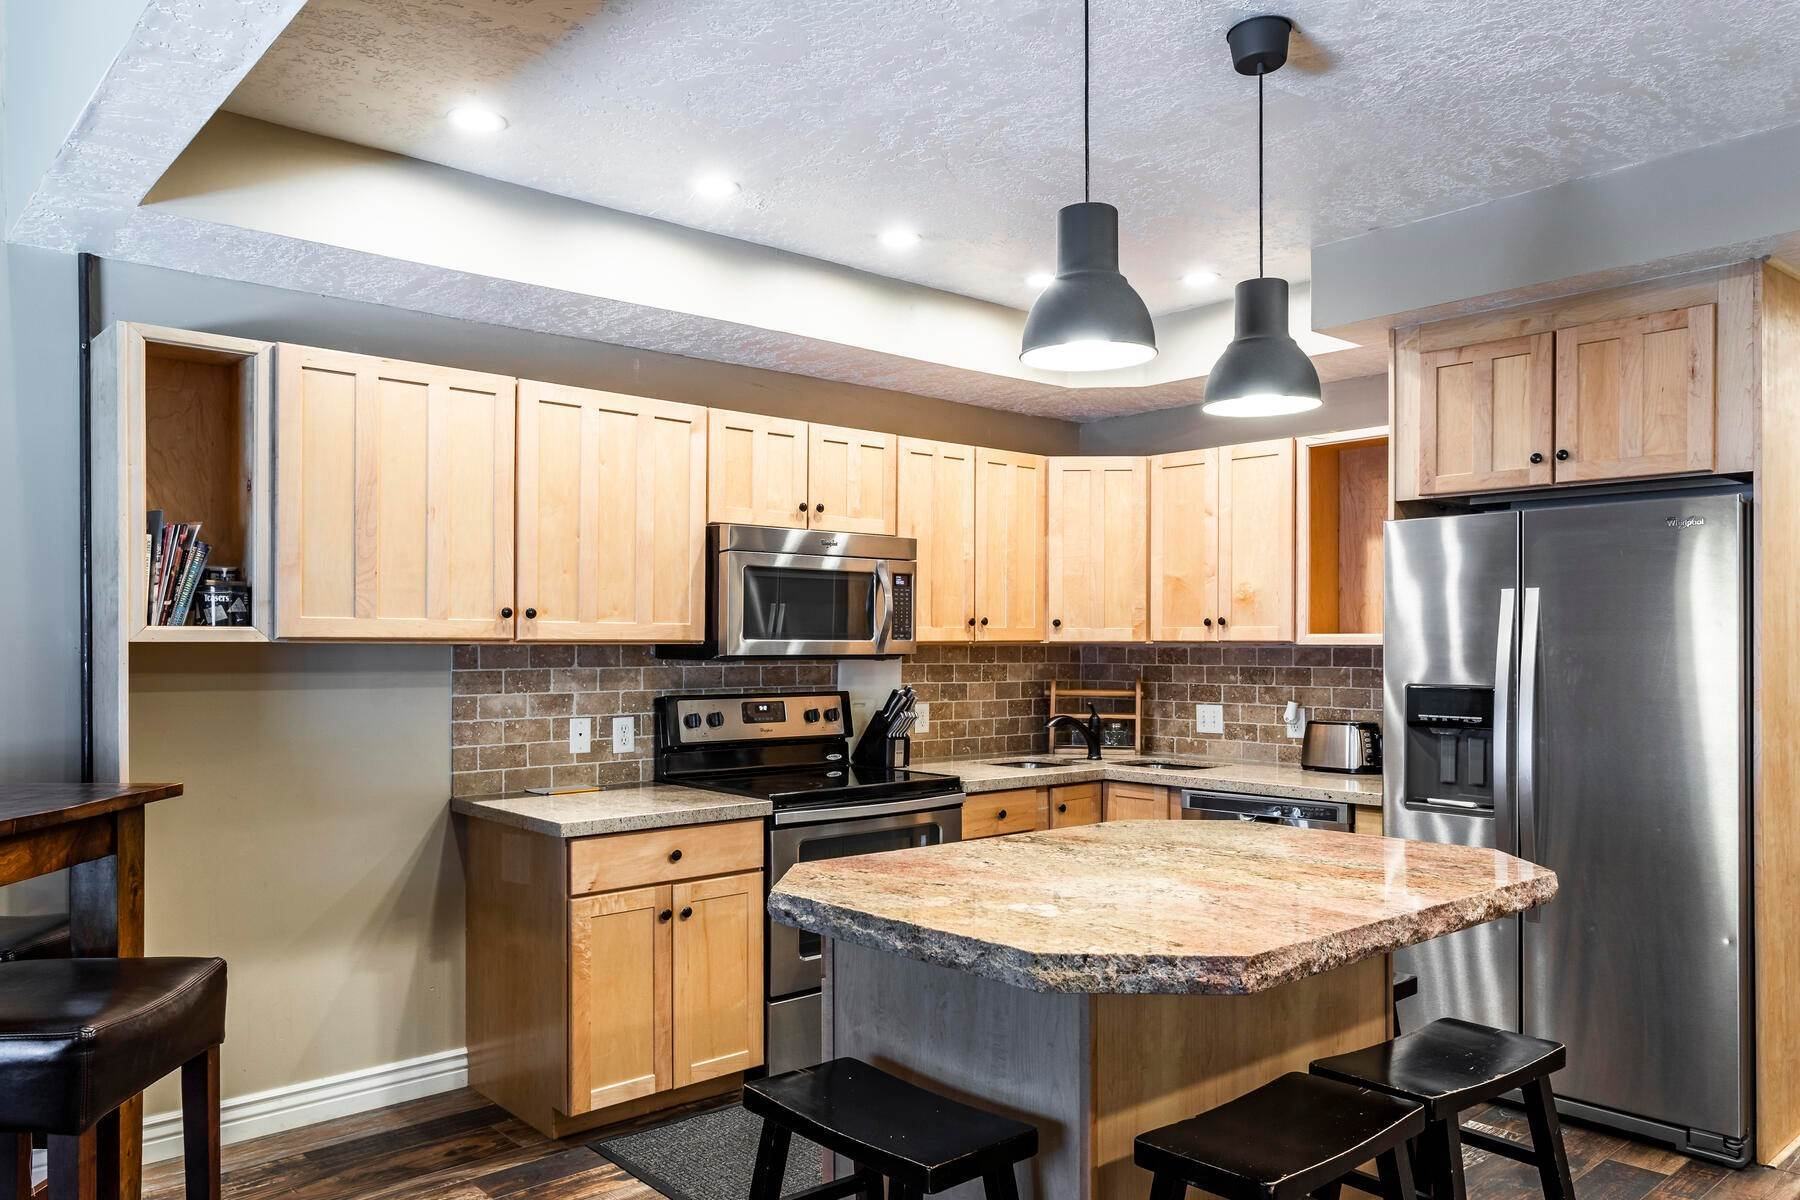 7. Condominiums for Sale at Interline Unit 2. Ultra Rare - Old Town, Park City Condo Just Steps to Skiing! 524 Woodside Ave #2 Park City, Utah 84060 United States